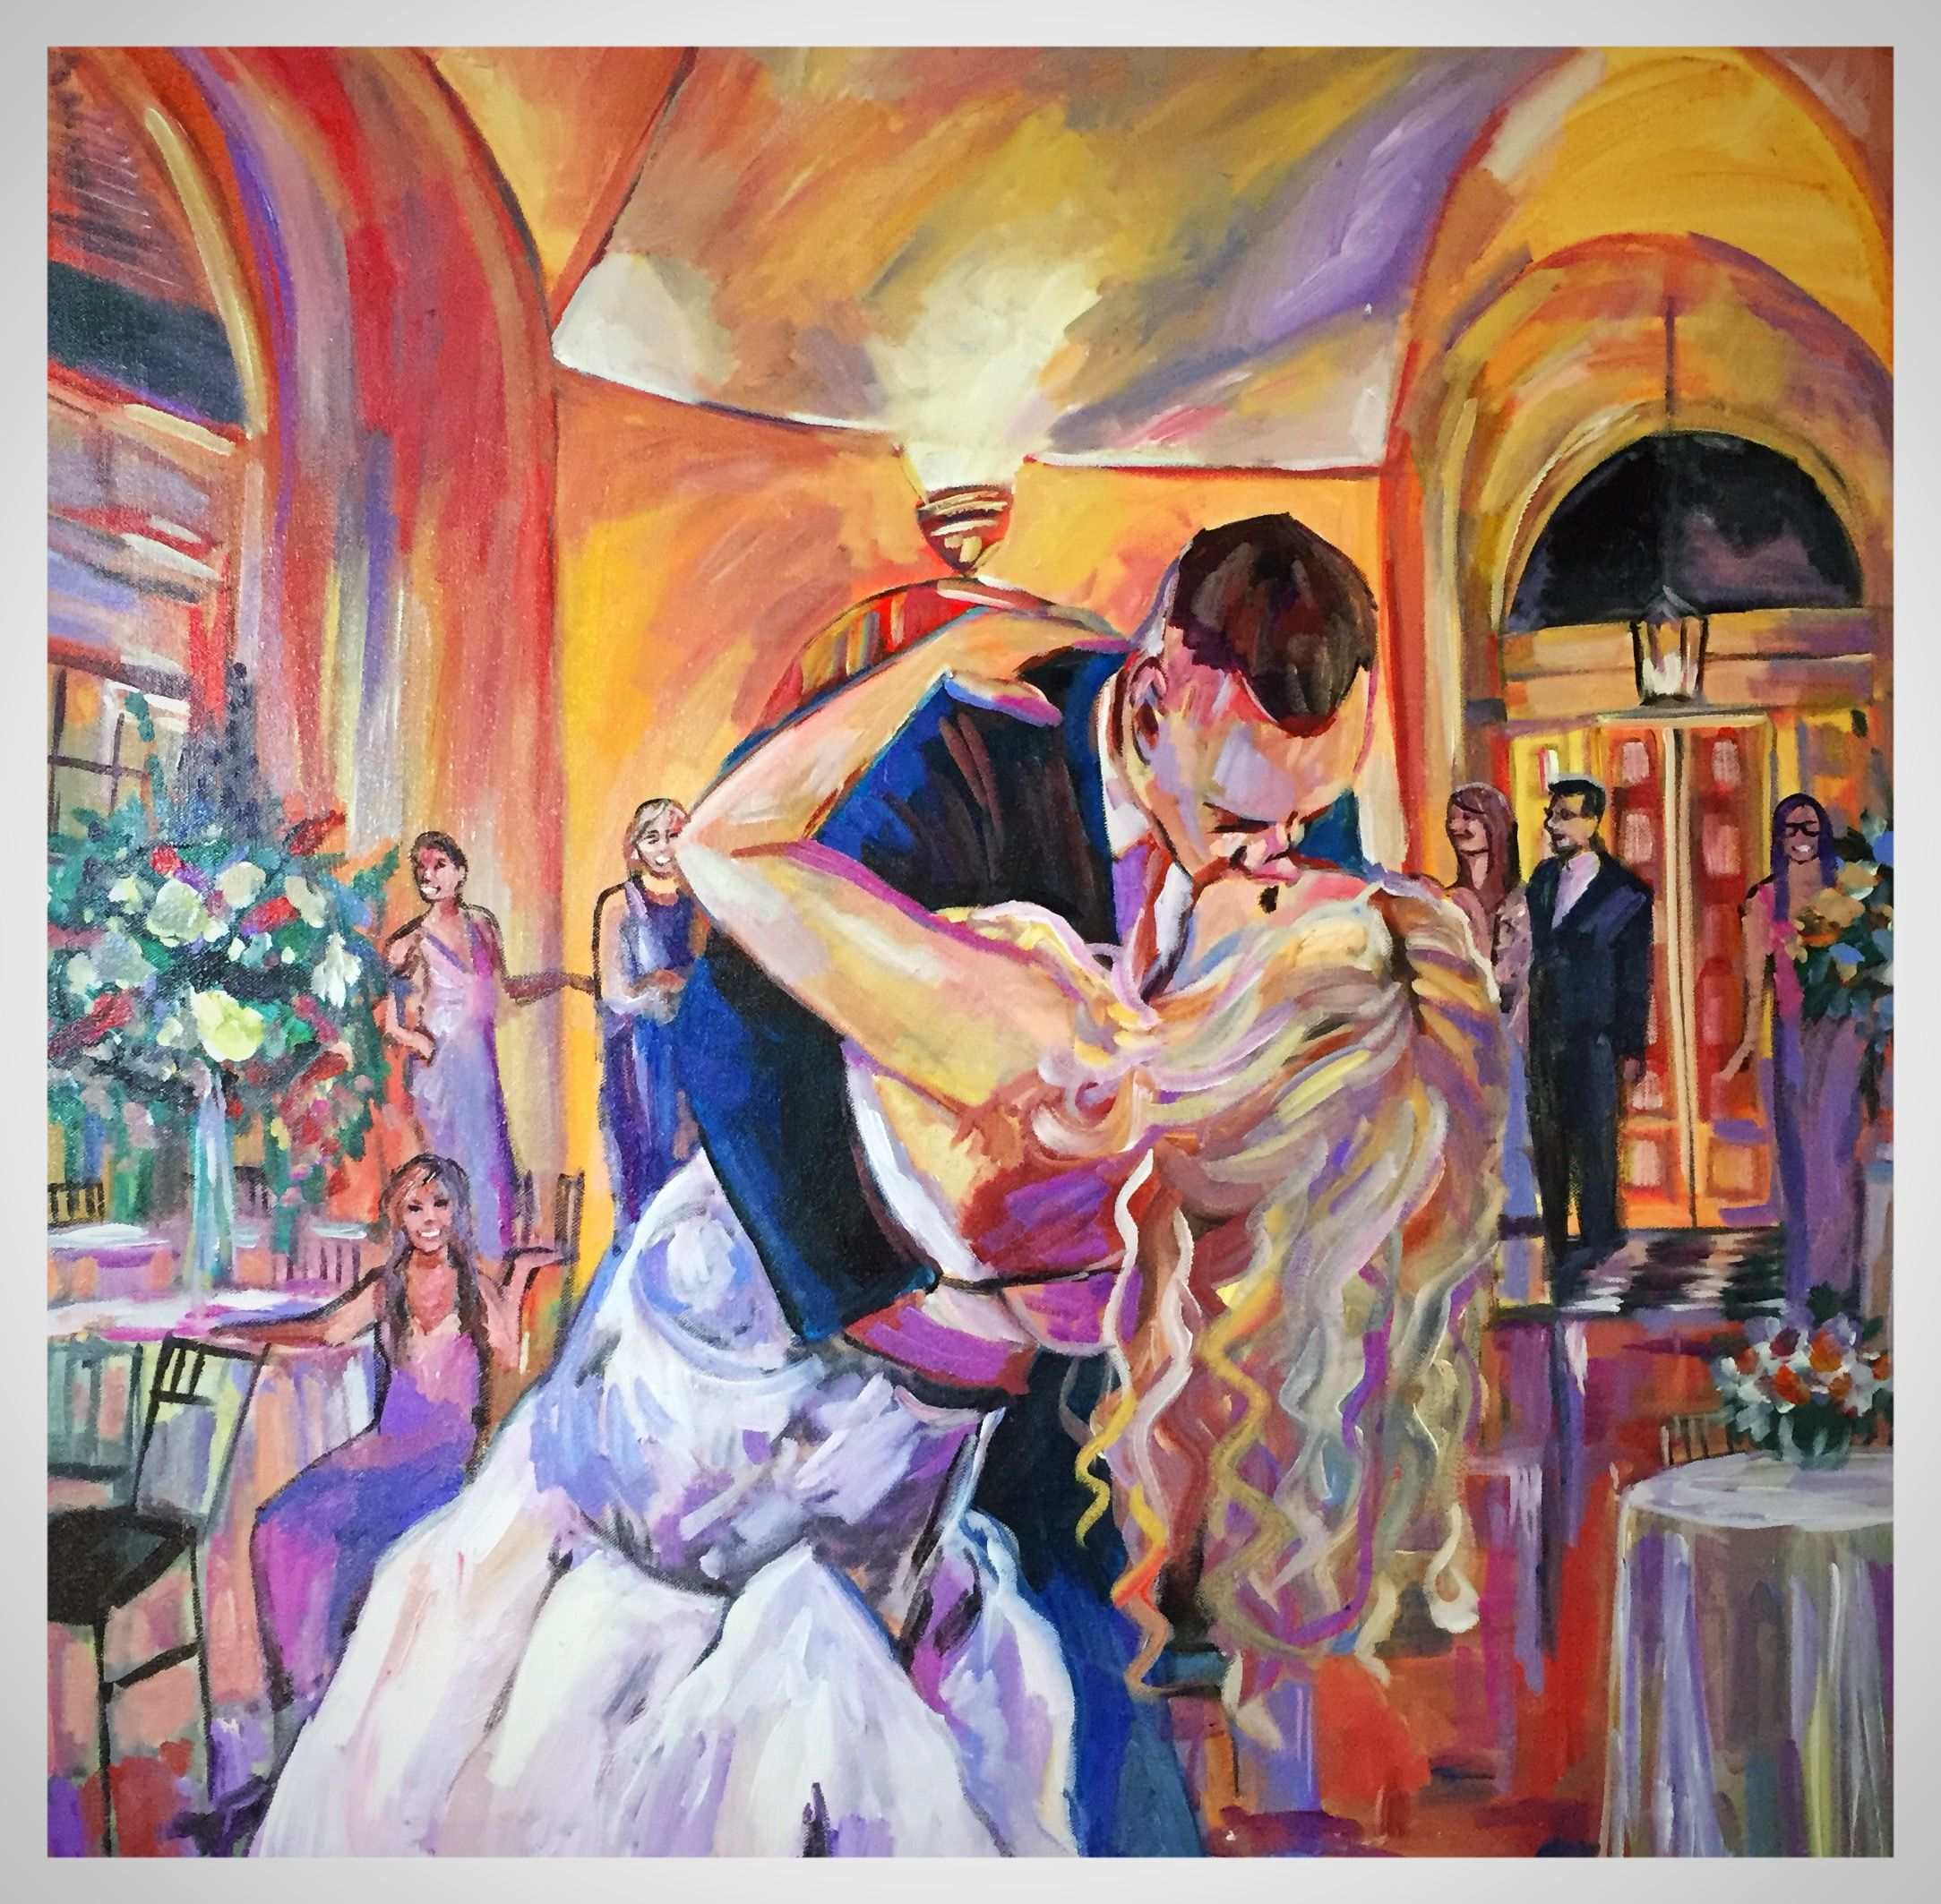 Christina Pion Owner Of Artistry Loves To Make Painting Personal She Paints Live Event Paintings Recreated Your Wedding Reception